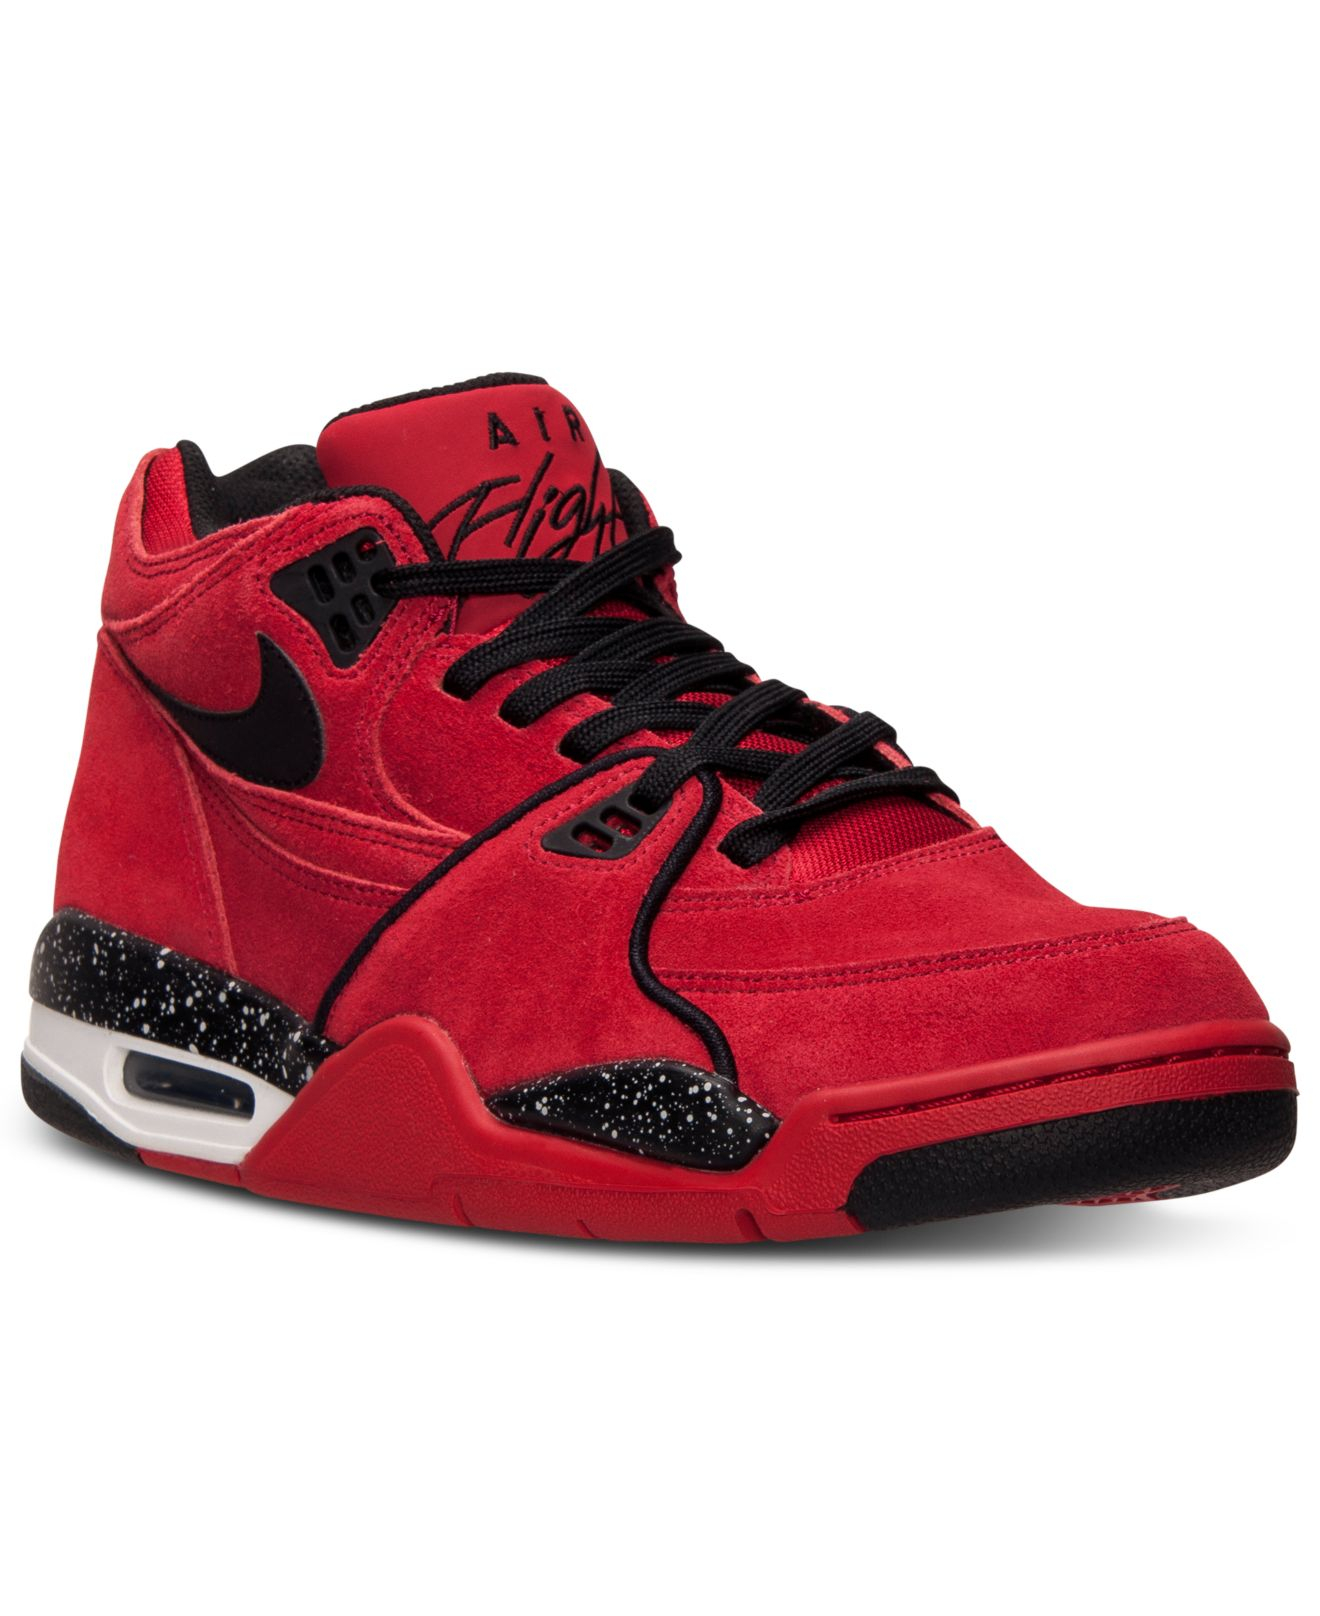 new style be130 06e49 new zealand nike air flight 89 713ce 687c2  get lyst nike mens air flight 89  basketball sneakers from finish line 8411f a3fc6